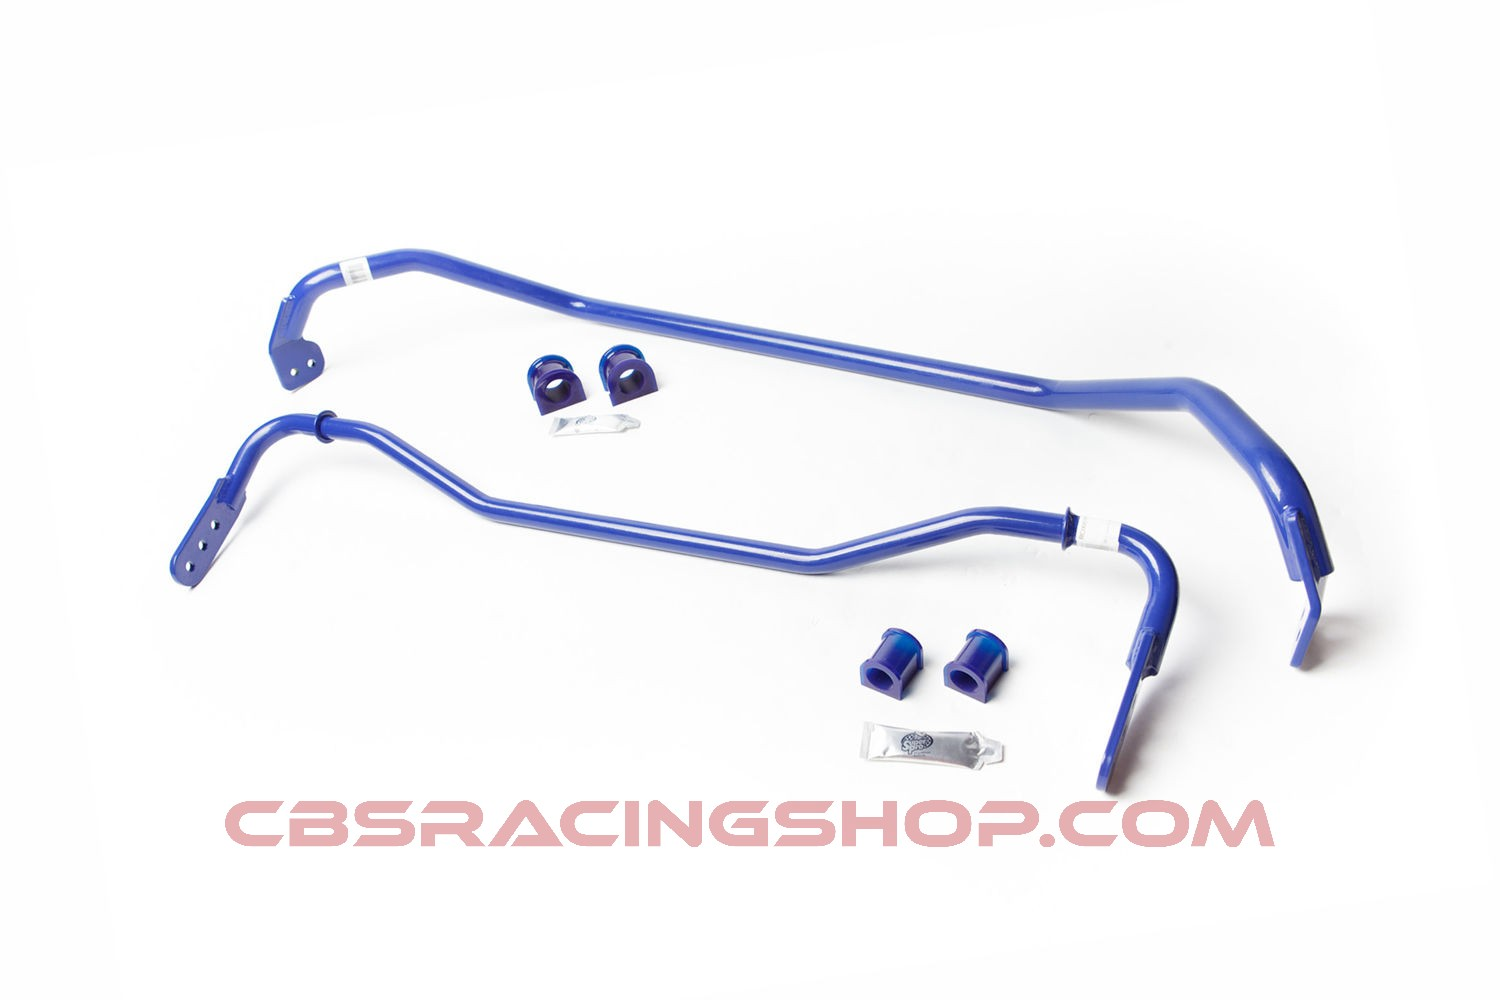 Picture for category Sway Bars & Endlinks